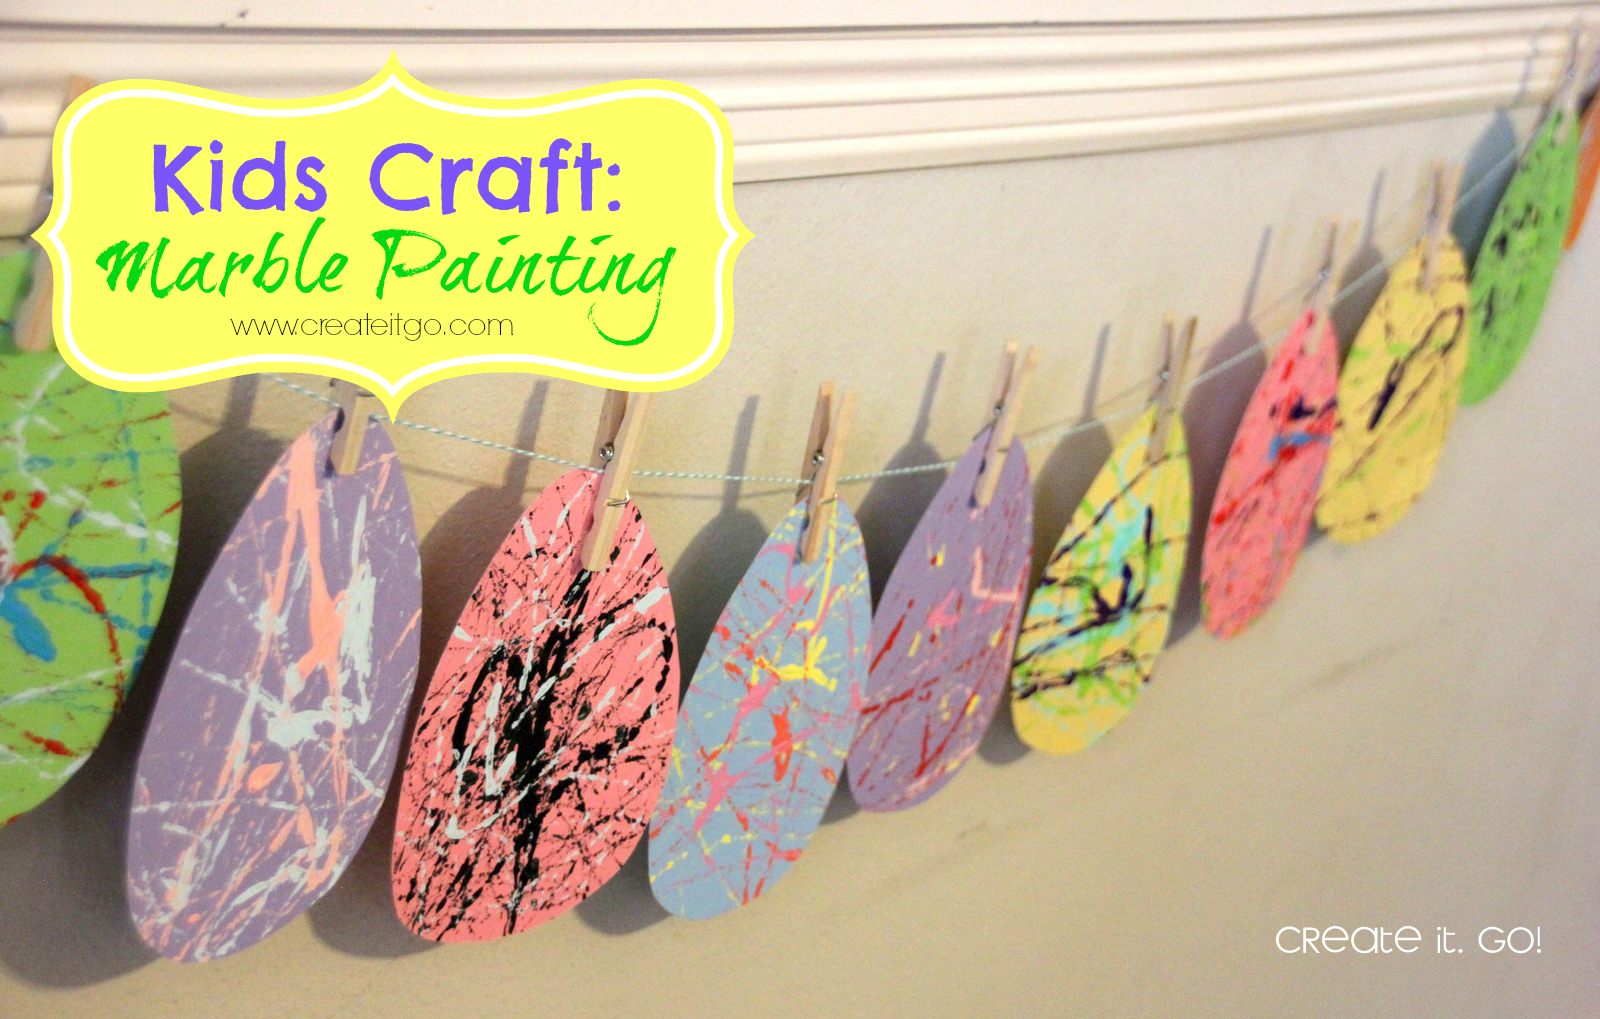 Crafts for one year olds -  Of An Easy Kids Craft To Make The Younger Ones A Little More Happy Didn T Really Do It For The 15 Year Old But He S One Of The Sickies Anyway